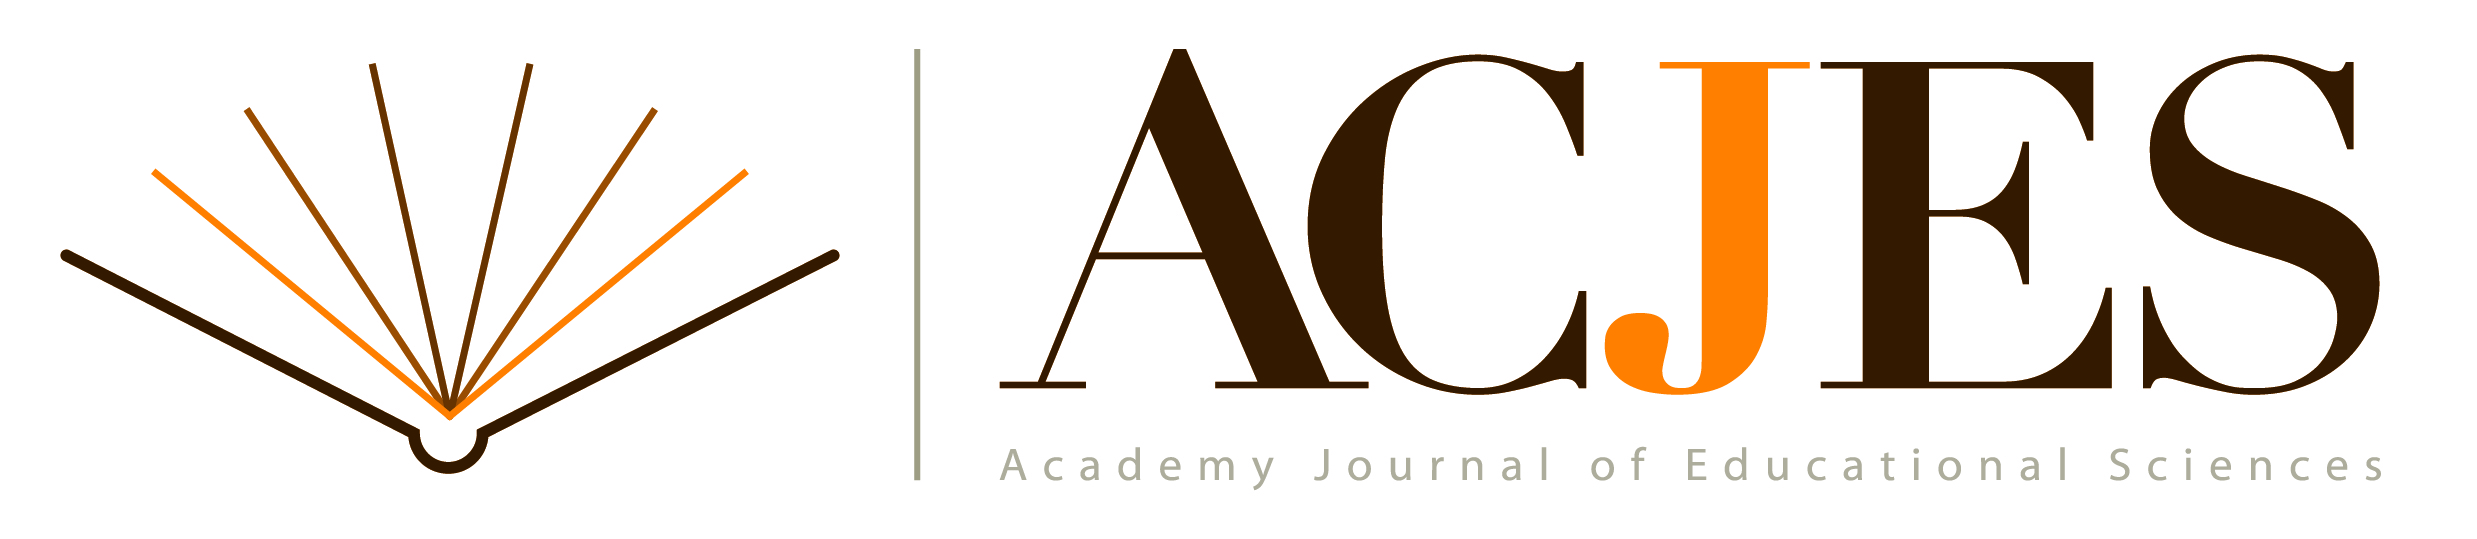 Academy Journal of Educational Sciences Cover Image